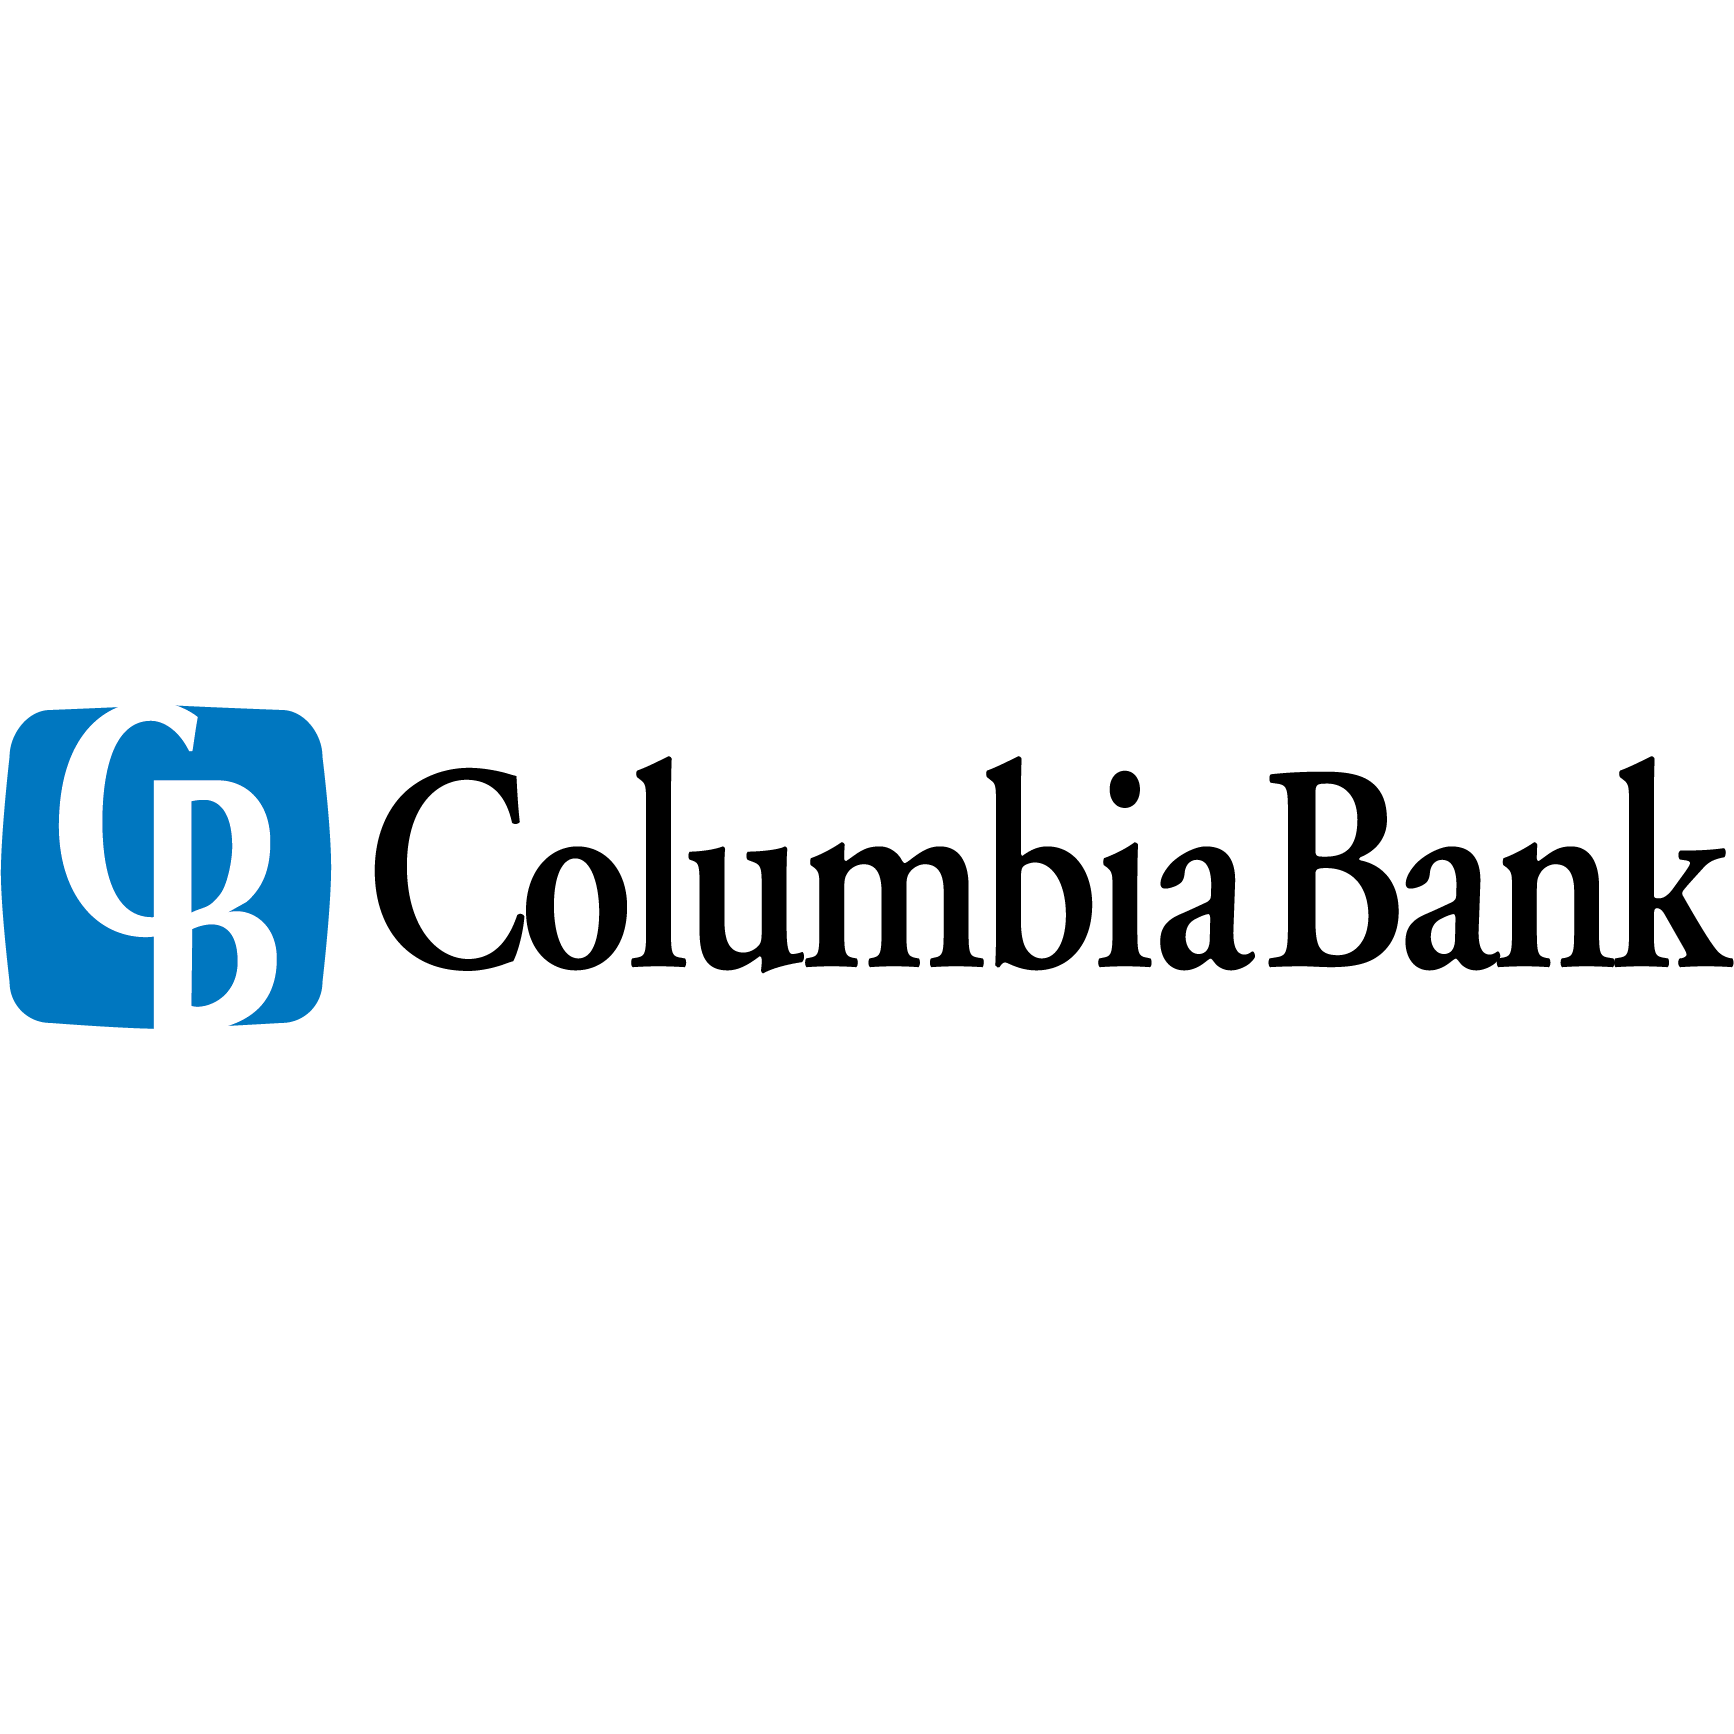 Columbia Bank - The Dalles, OR 97058 - (541)298-6647 | ShowMeLocal.com